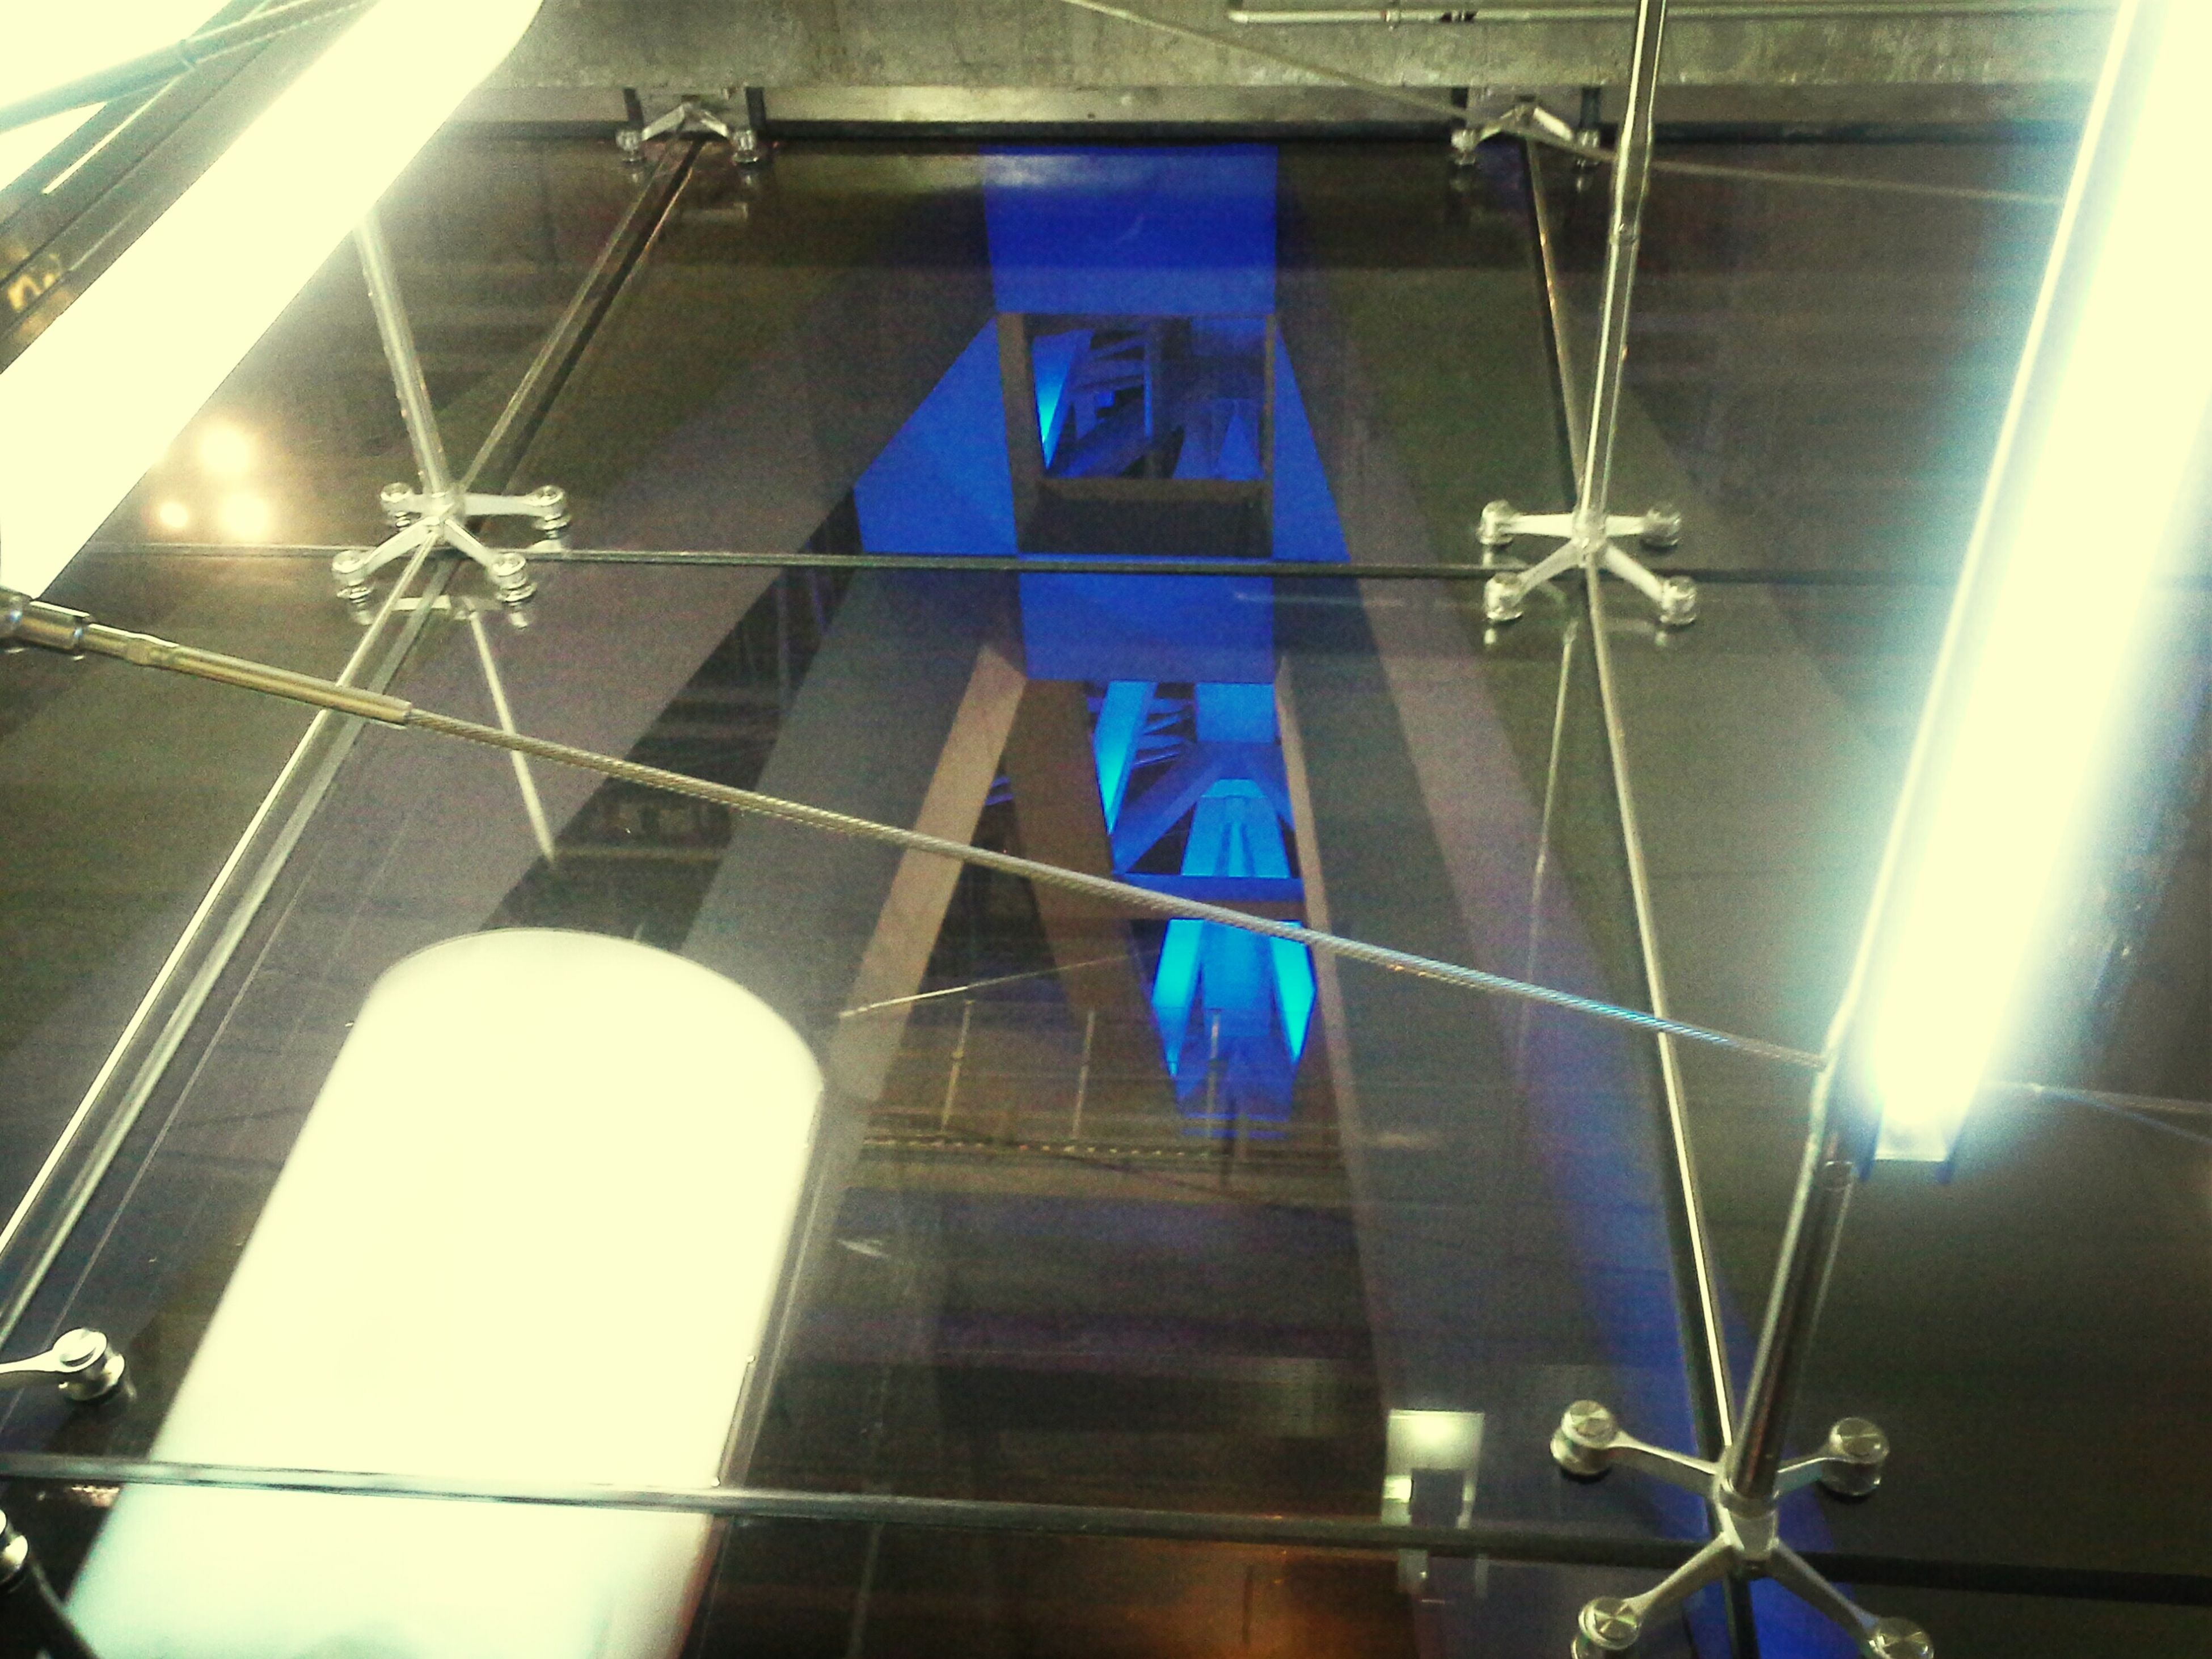 indoors, low angle view, built structure, architecture, hanging, ceiling, lighting equipment, glass - material, window, reflection, illuminated, building exterior, wall - building feature, technology, blue, no people, building, electricity, modern, sunlight